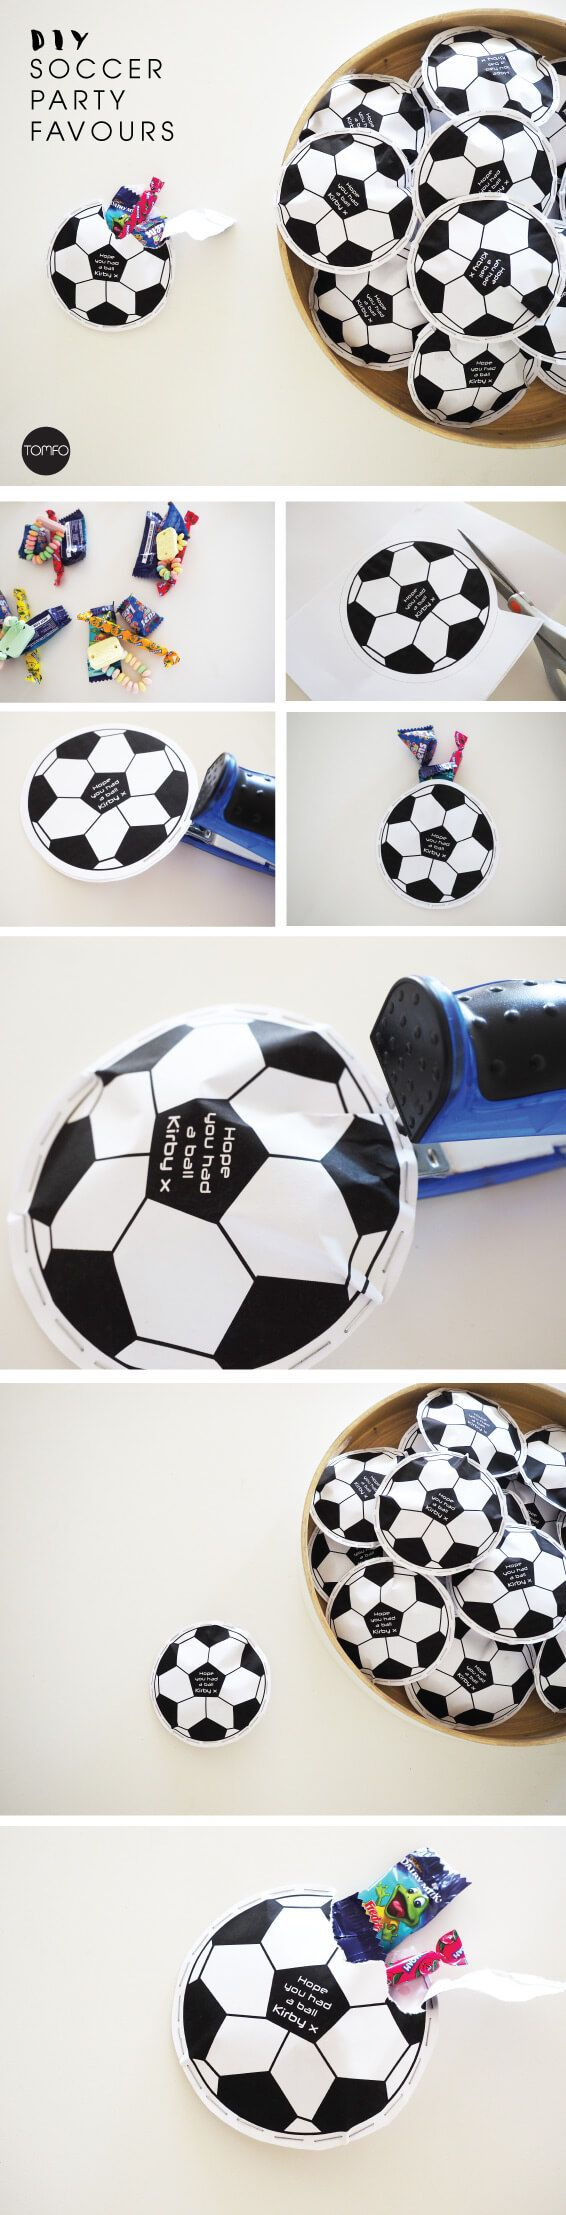 Free printable  Planning a soccer party? Try these DIY Soccer Party Favours, too cute! There's a free printable and other party ideas on this blog too.